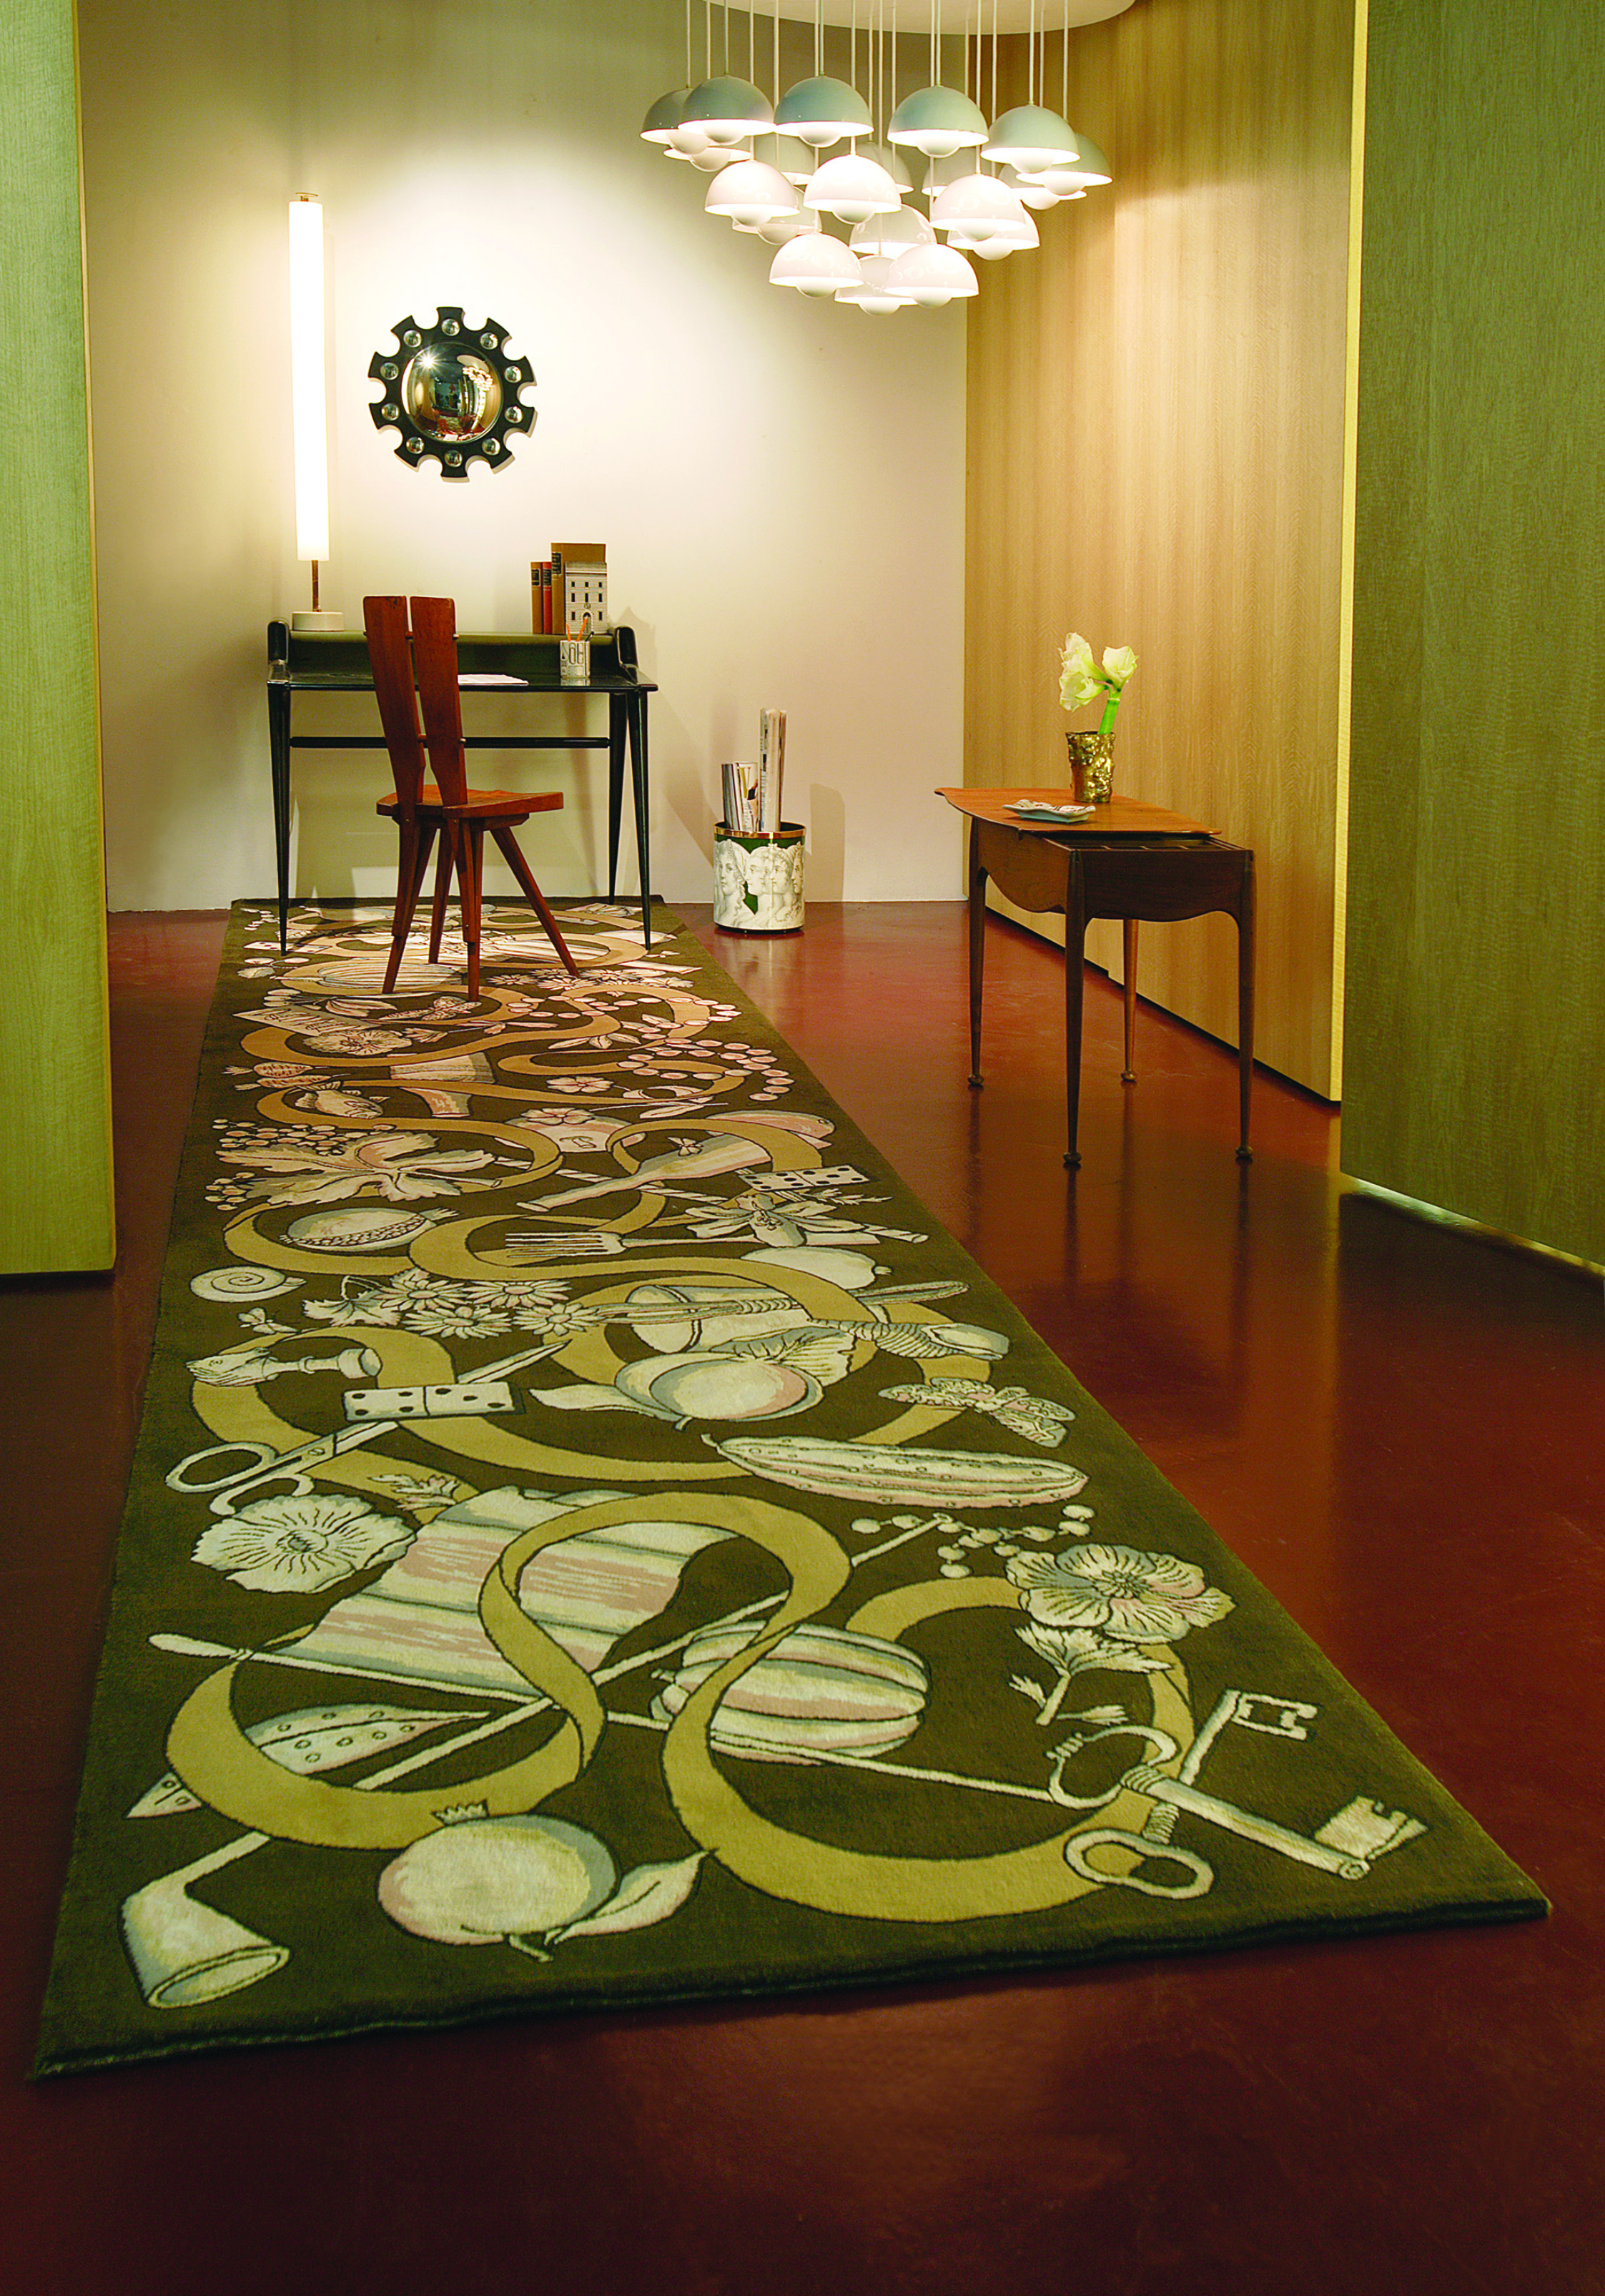 Rug 'Nastro' (ribbon) by Roubini Rugs in wool and silk, hand knotted. To the right of the rug is a paper basket 'Profili di donna' on green. On the desk is 'Stumenti da disegni' a porcelain pencil holder and a bookend 'Architettura'. The mirror is 'Van Eyck'. With the exception of the desk all are by Fornasetti